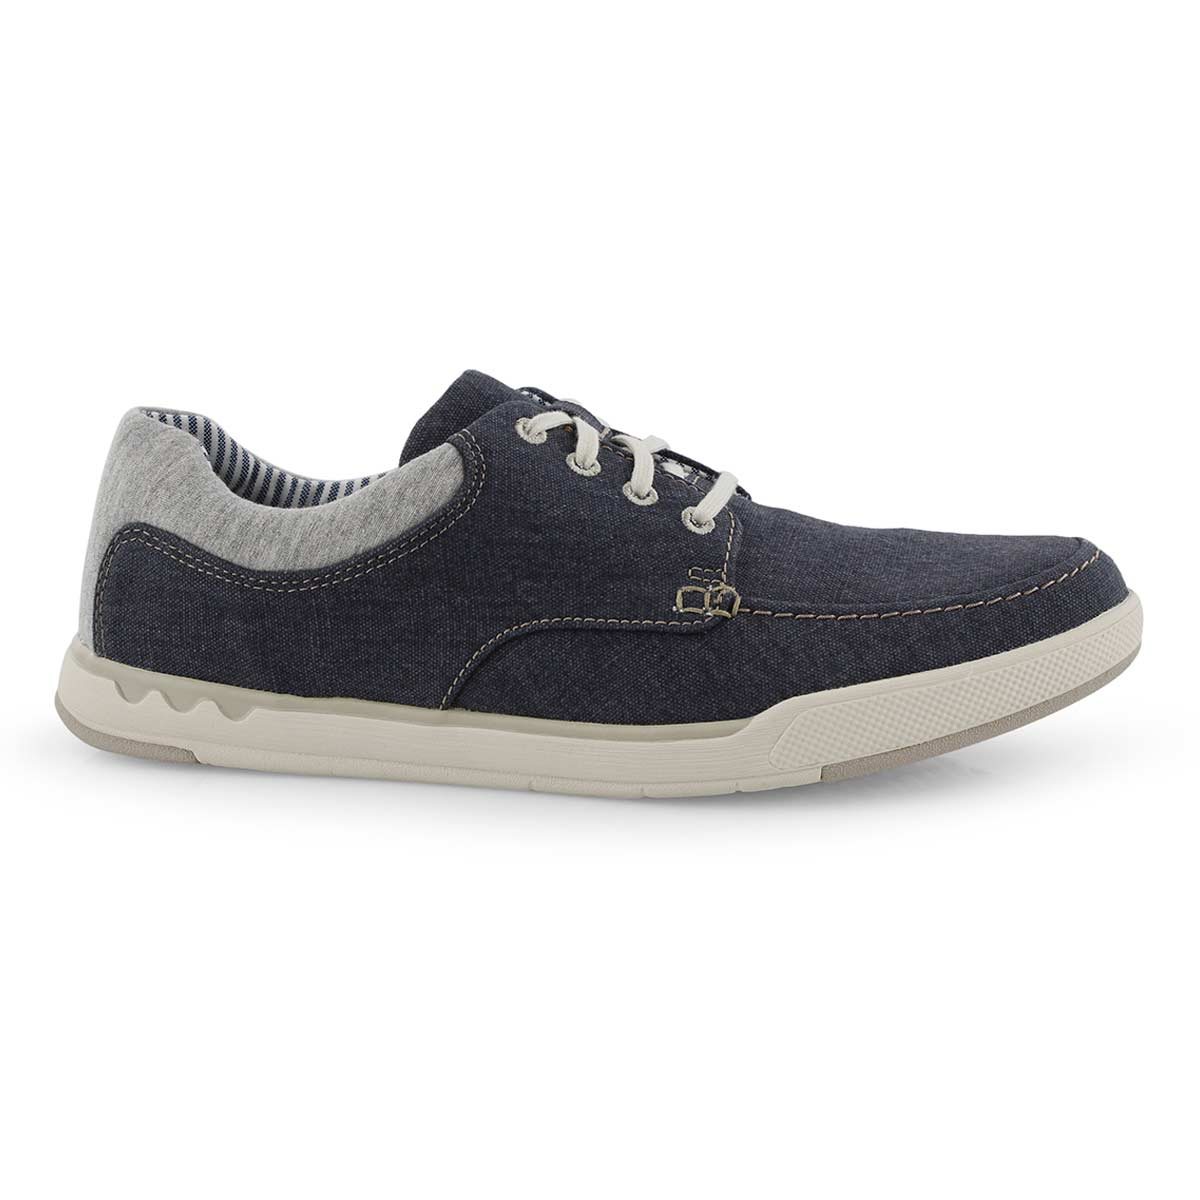 Mns Step Isle Lace nvy casual shoe